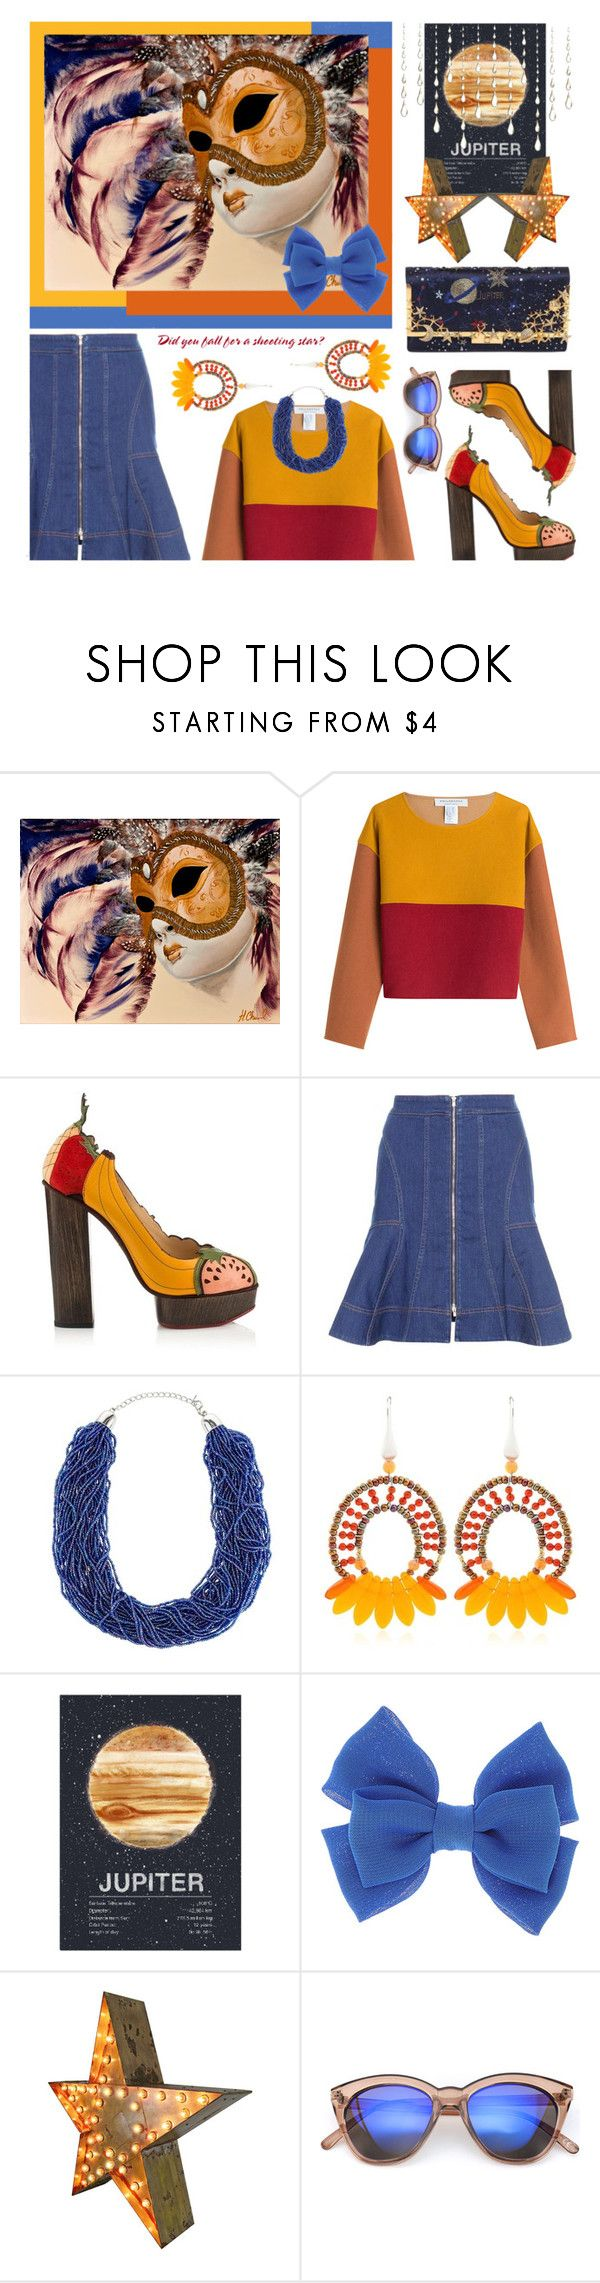 """""""She's Back In The Atmosphere - With Drops Of Jupiter In Her Hair"""" by sharee64 ❤ liked on Polyvore featuring Philosophy di Lorenzo Serafini, STELLA McCARTNEY, John Lewis and Ziio"""